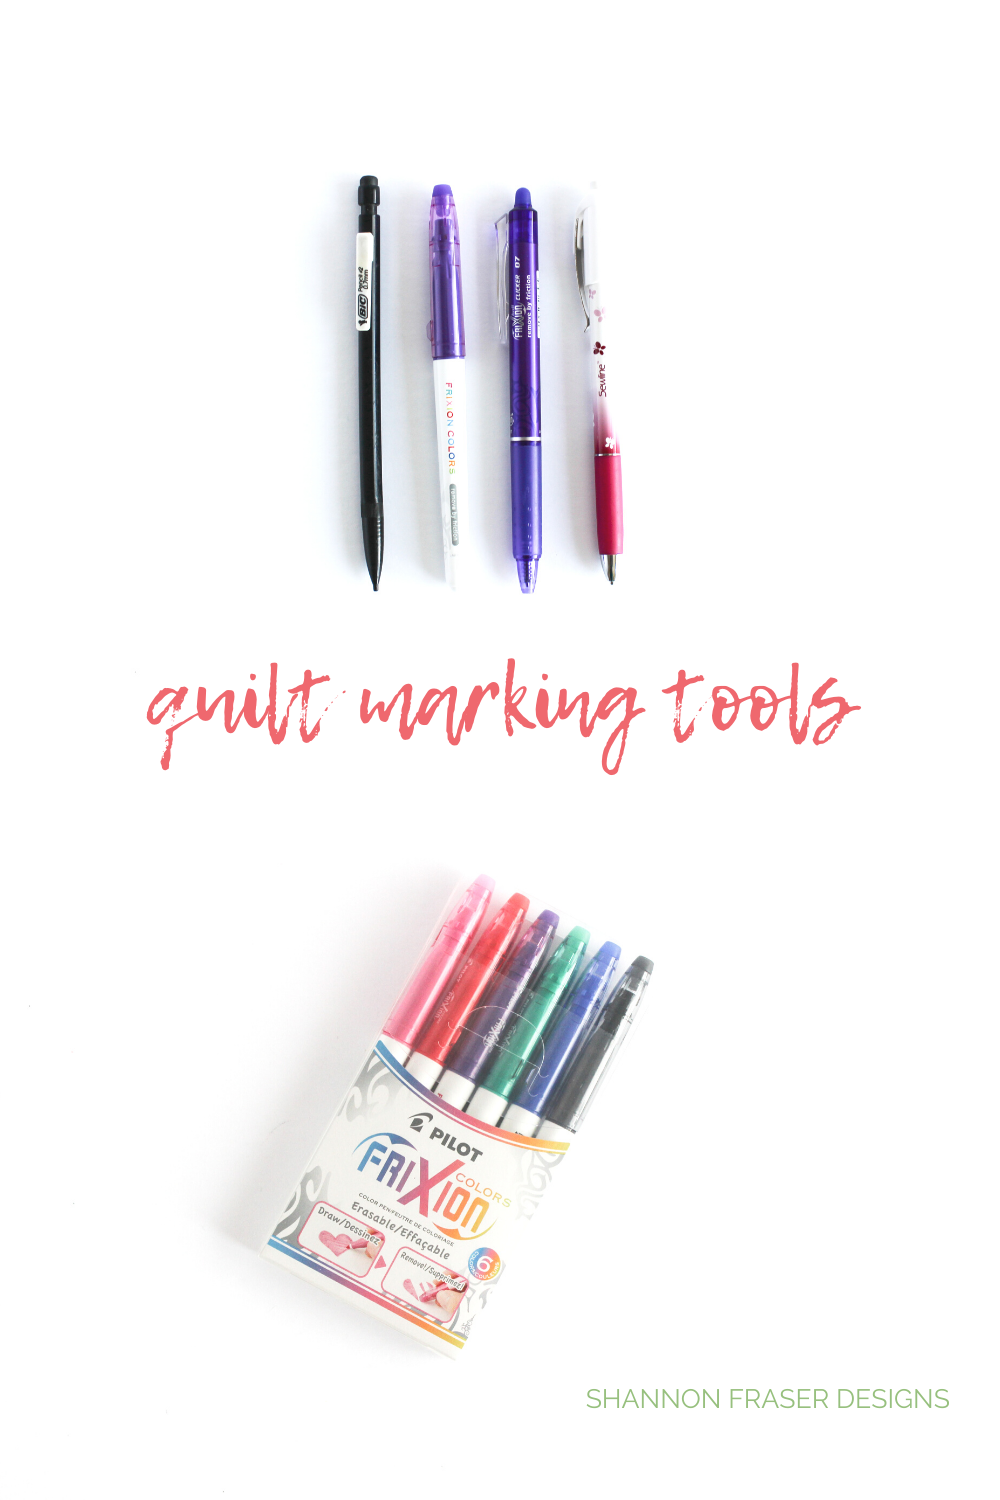 Line up of marking tools for quilters | Top 10 tools to get started quilting | Shannon Fraser Designs